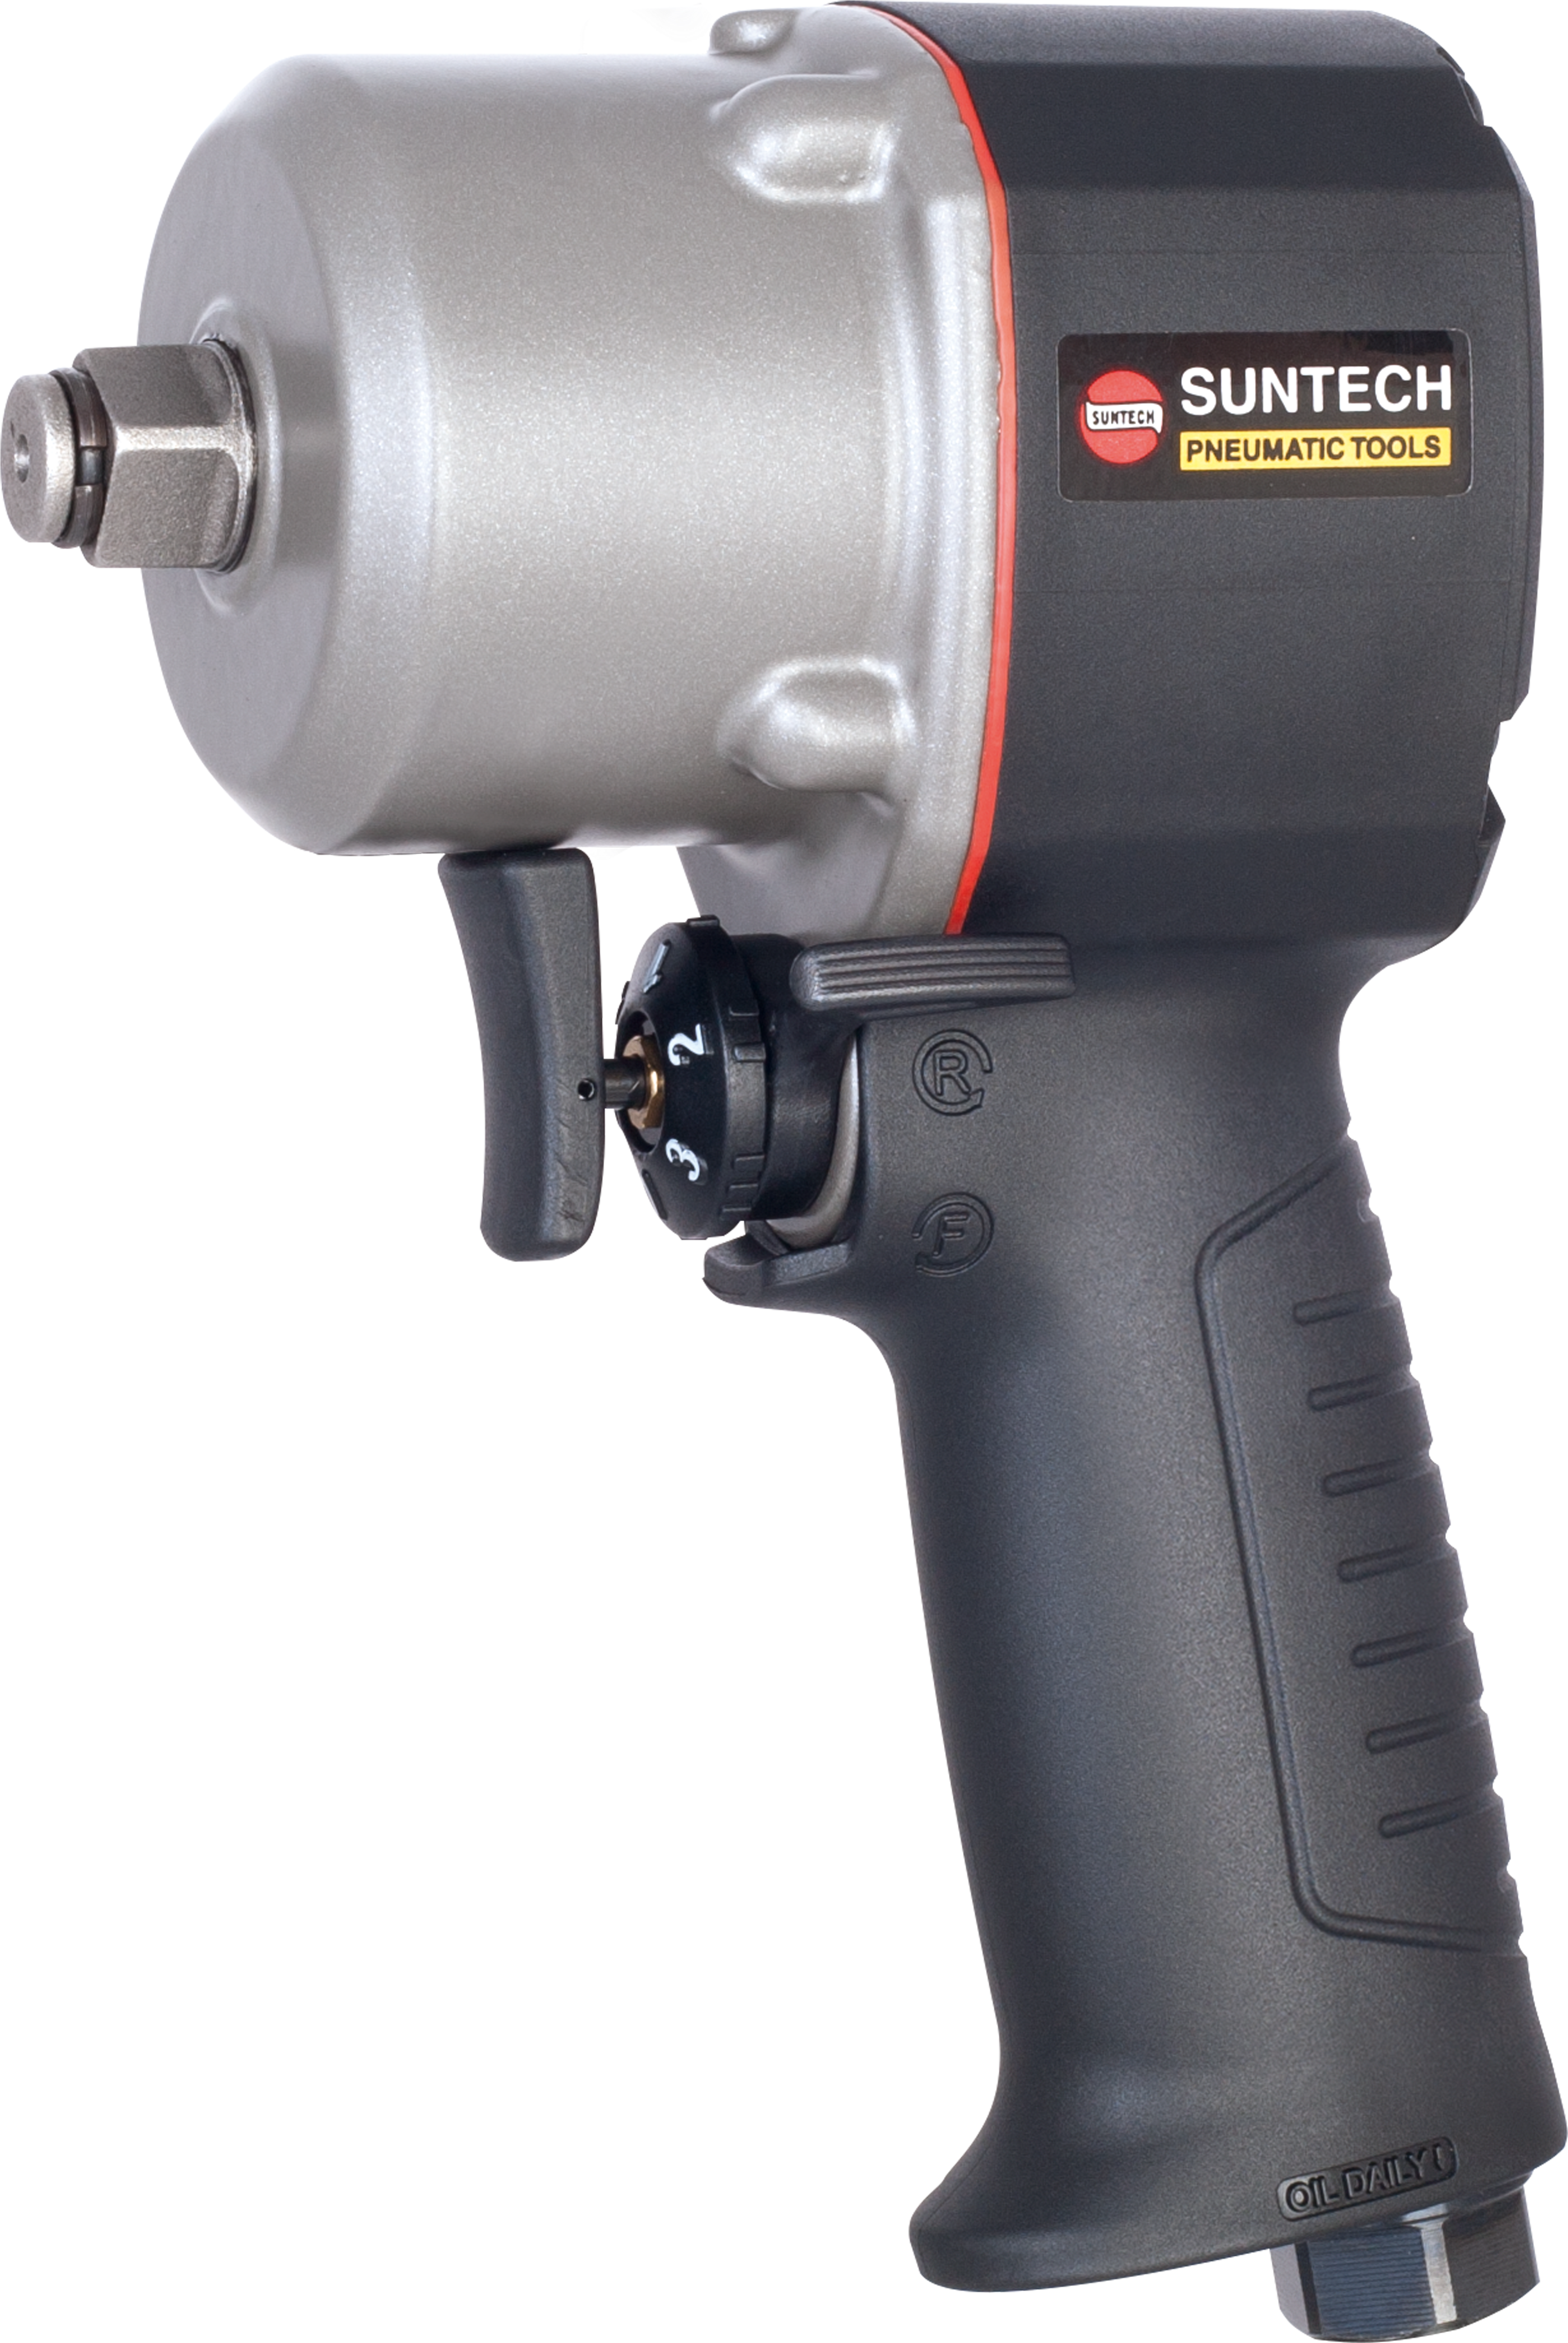 Impact wrench clipart jpg free download HD Drill Clipart Impact Wrench - Suntech Sm 41 4012p Transparent PNG ... jpg free download